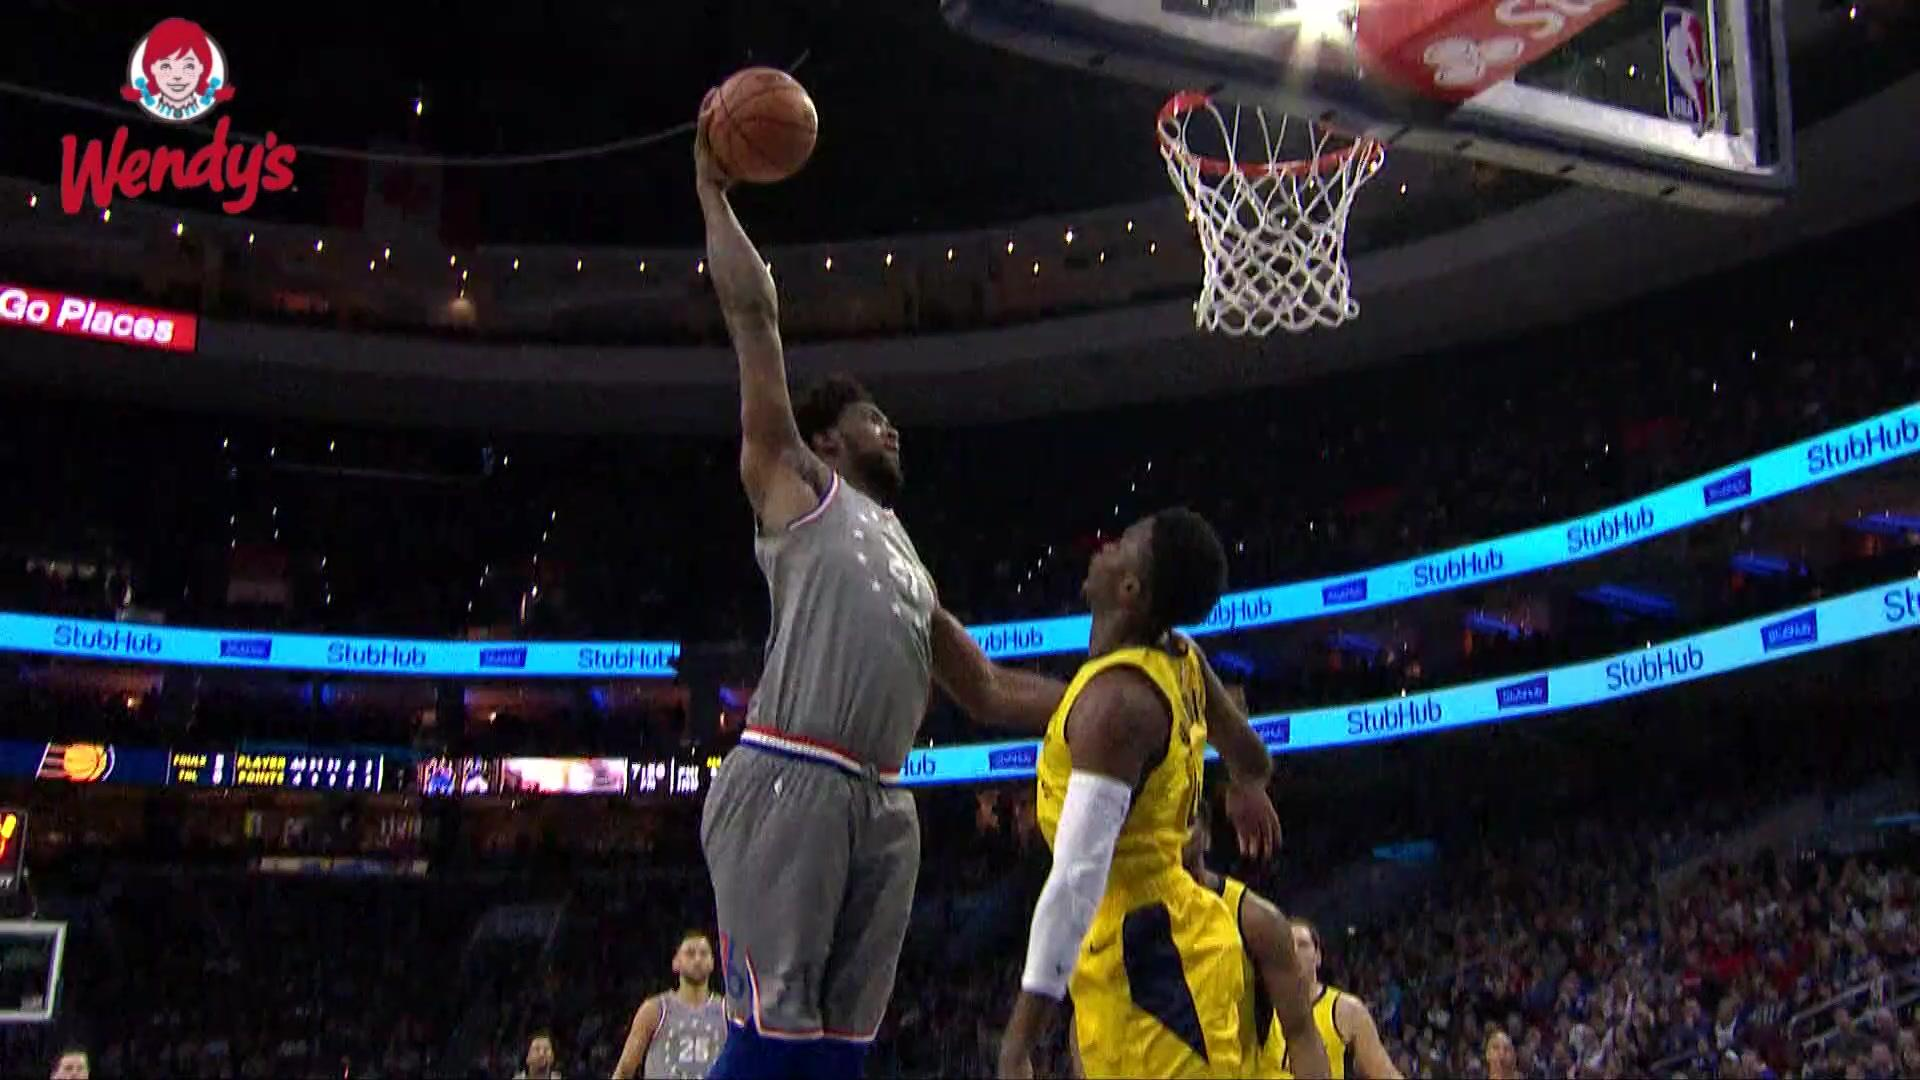 Ben Simmons finds Joel Embiid for the monster slam against the Pacers